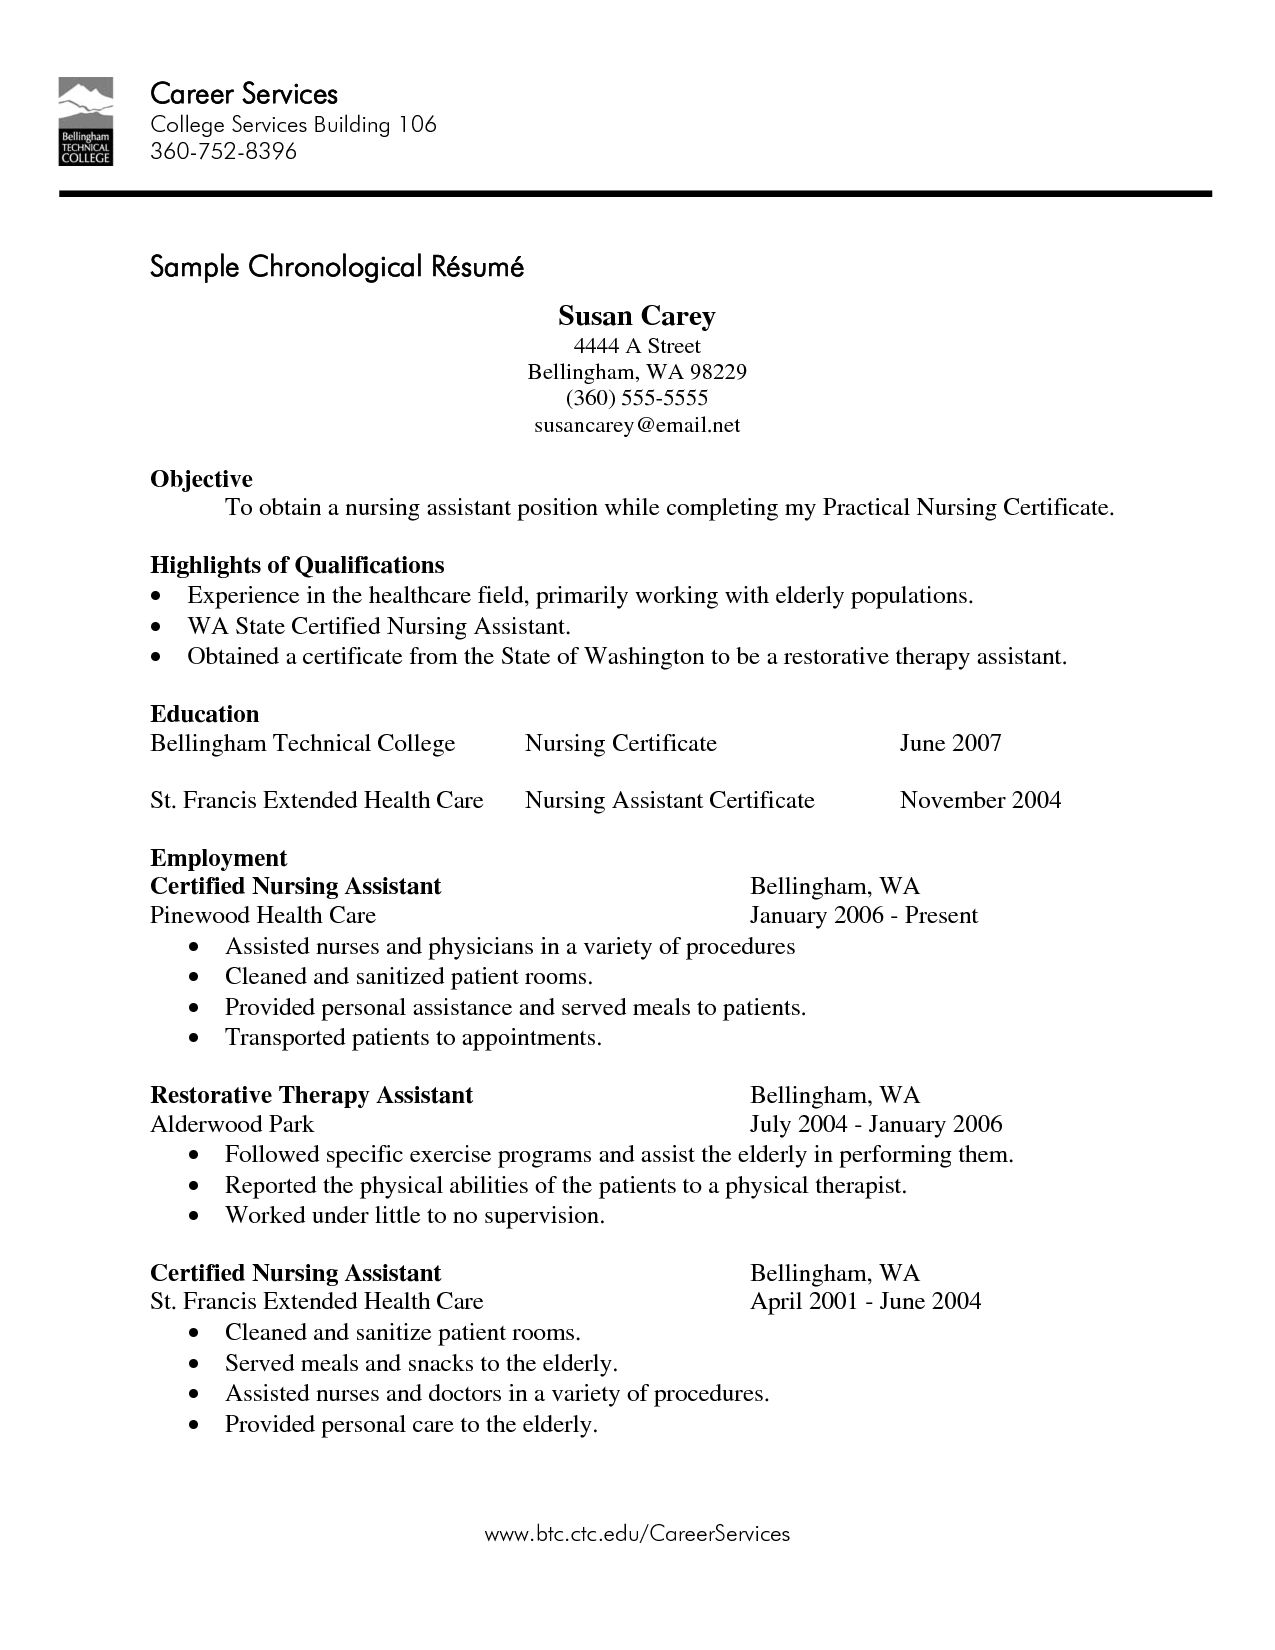 Sample Resume For Nursing Assistant Adorable Cna Resume Sampleml Experience Template Design  Resume Templates .